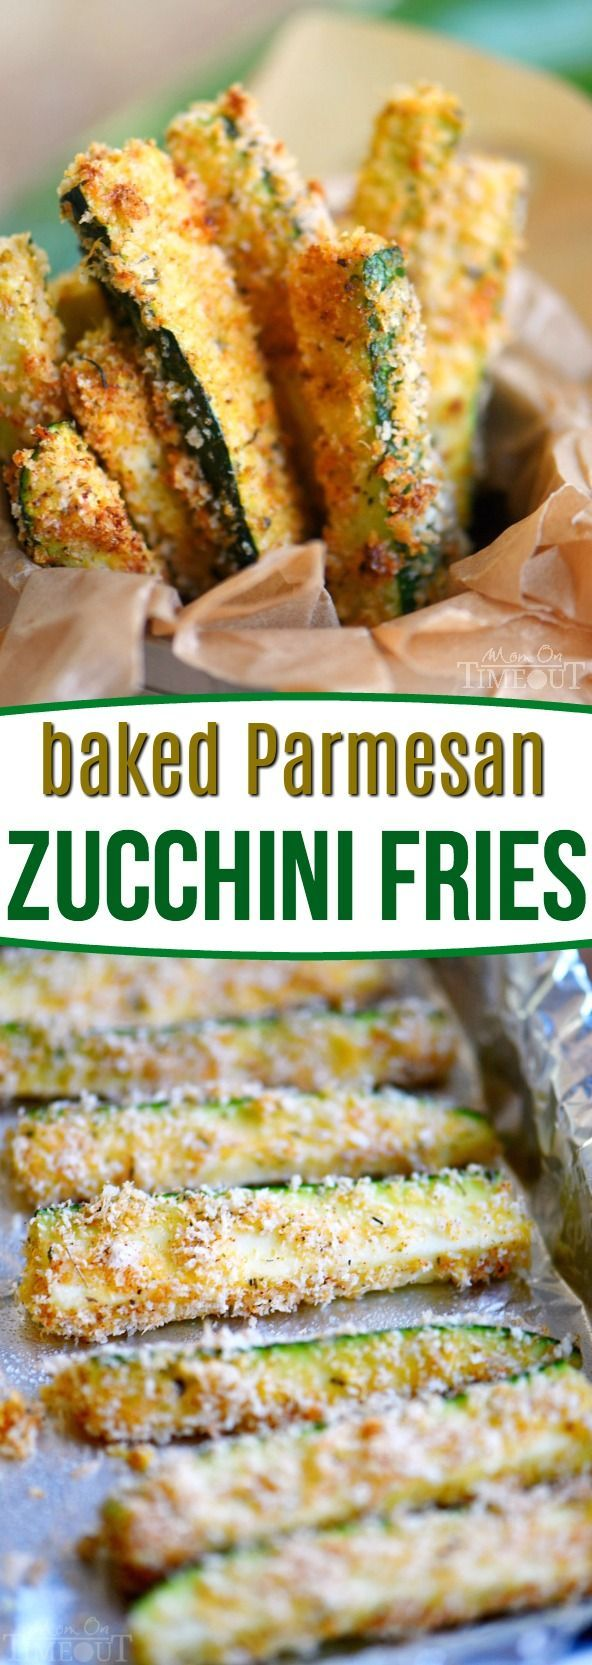 Your new favorite way to eat zucchini! These Baked Parmesan Zucchini Fries are loaded with flavor and baked to golden perfection! The perfect way to use up your summer bounty! // Mom On Timeout